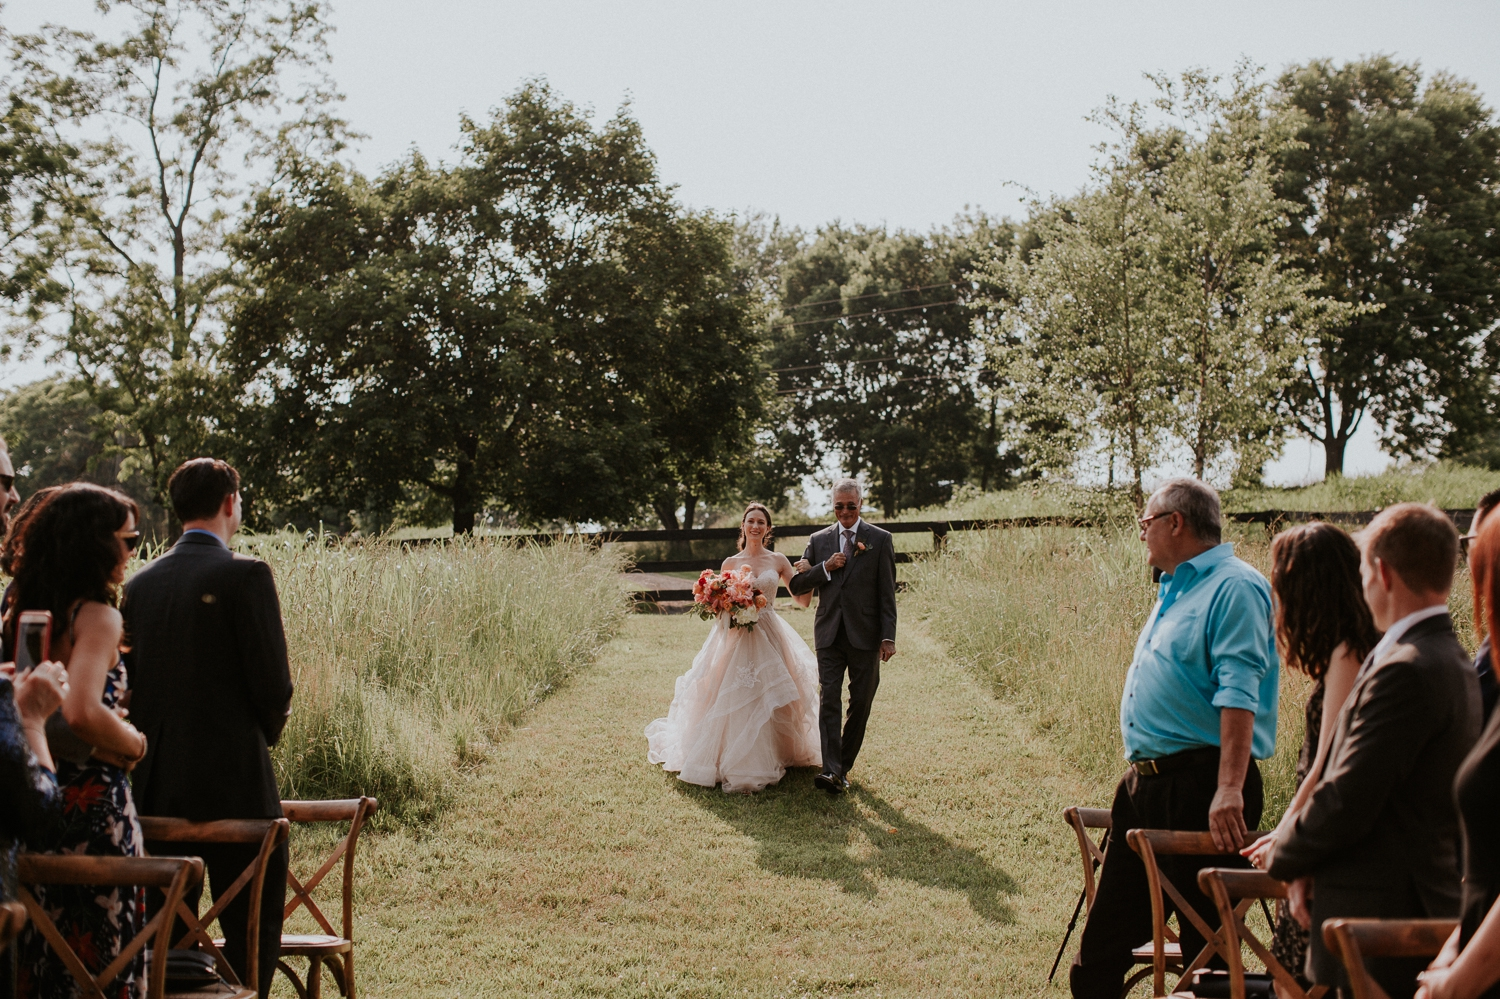 purceville-virginia-tranquility-farms-wedding-photography-planning-coordination 44.jpg